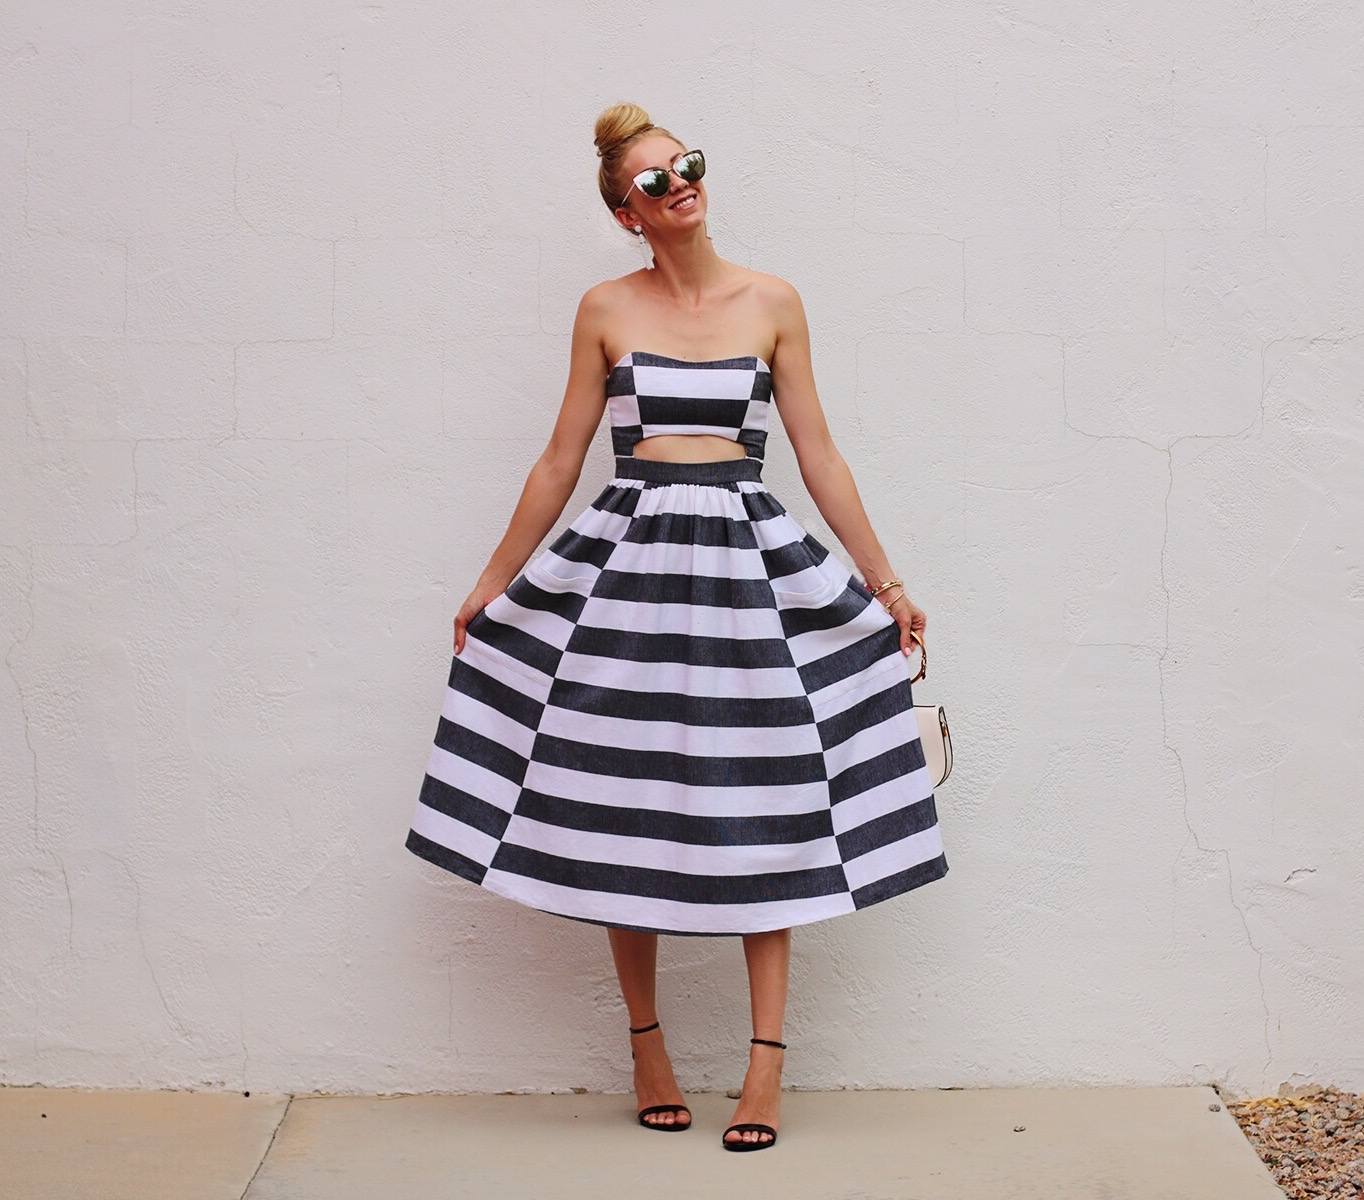 Stripe A Pose With Love And Style